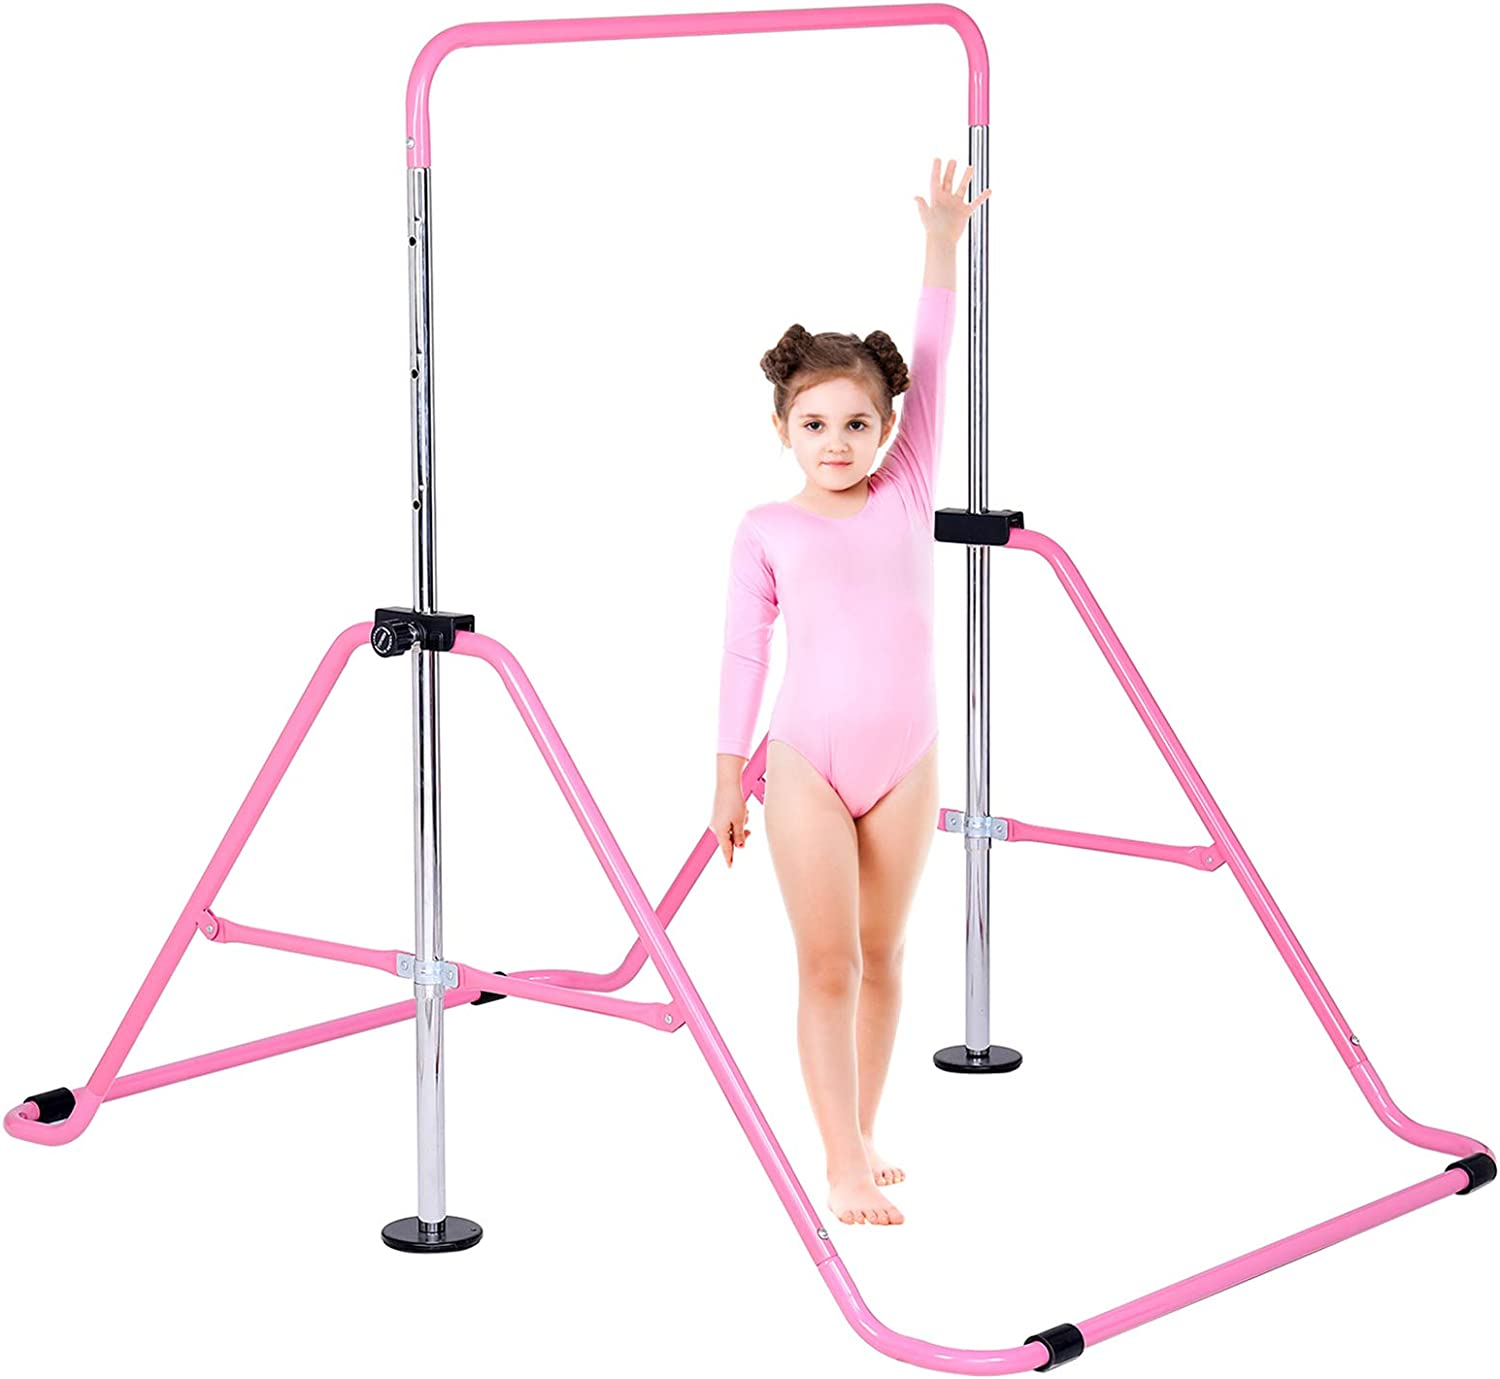 Dai&F Gymnastics Bars for Kids, Folding Gymnastics Horizontal Bars with Adjustable Height, Junior Training Kip Bar Home Using for Child, Girls, Boys(Pink/Blue)